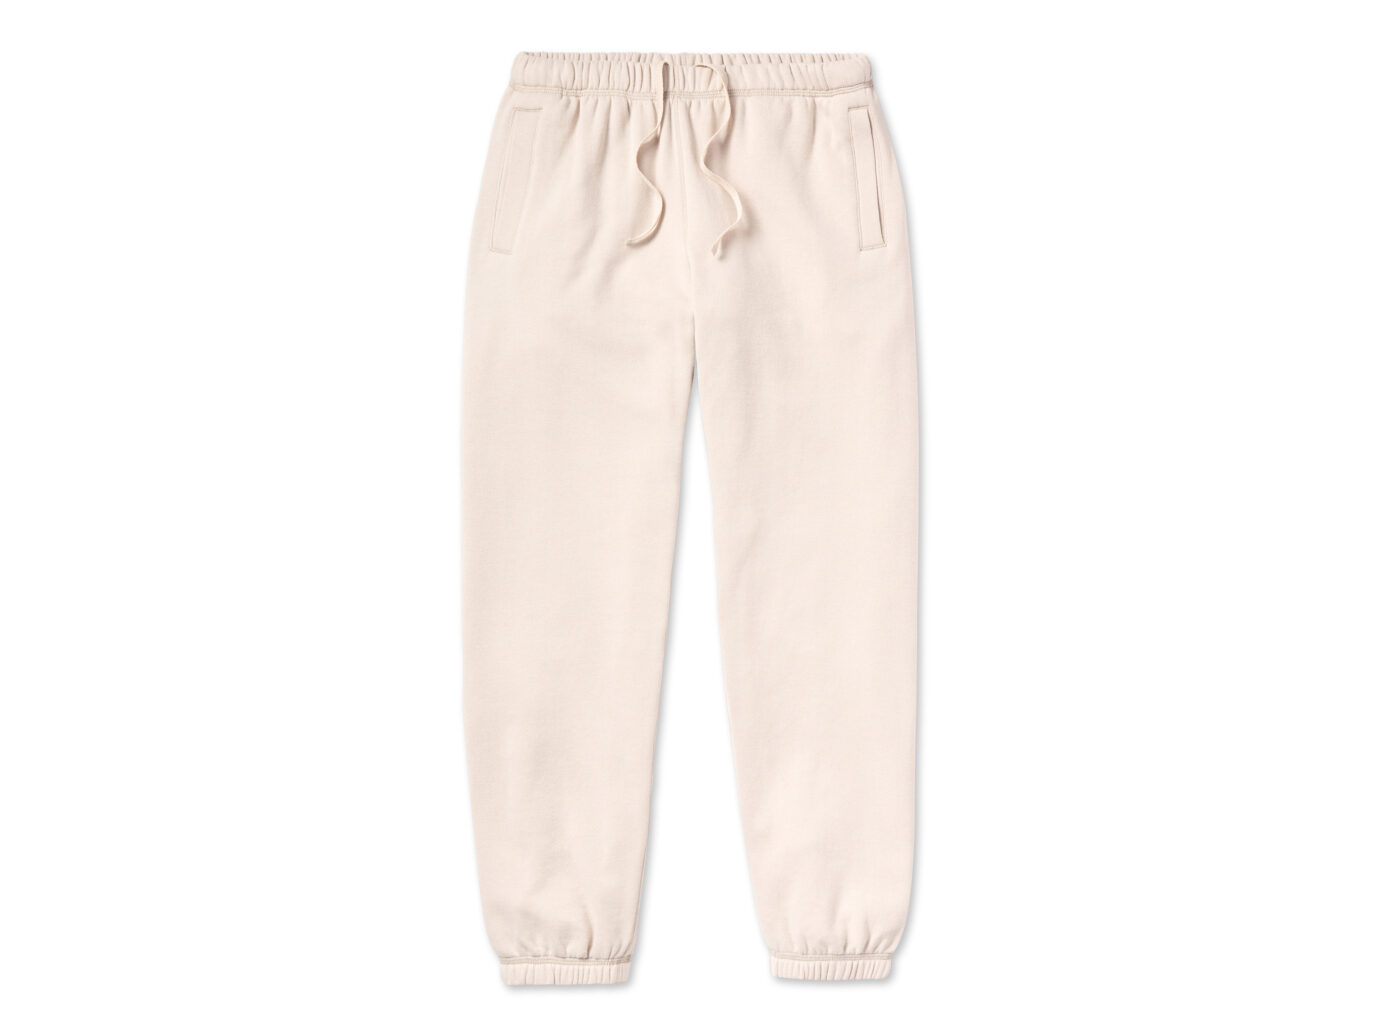 Entireworld Loop Back Sweatpants Cream Sweatpants